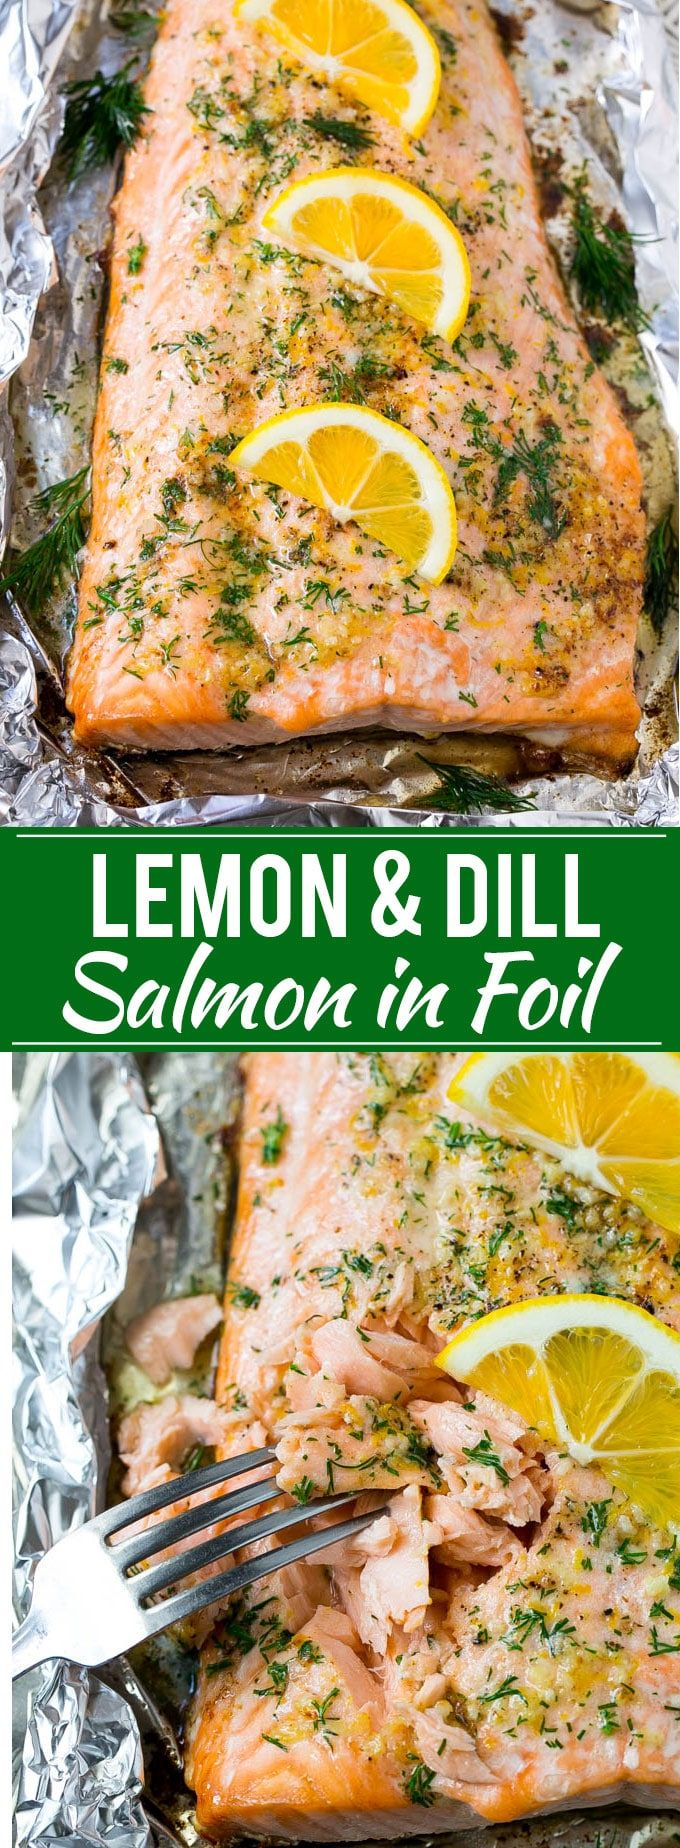 Salmon in Foil with Lemon and Dill Recipe  Foil Wrapped Salmon  Baked Salmon  Easy Salmon Recipe  Lemon and Dill Salmon